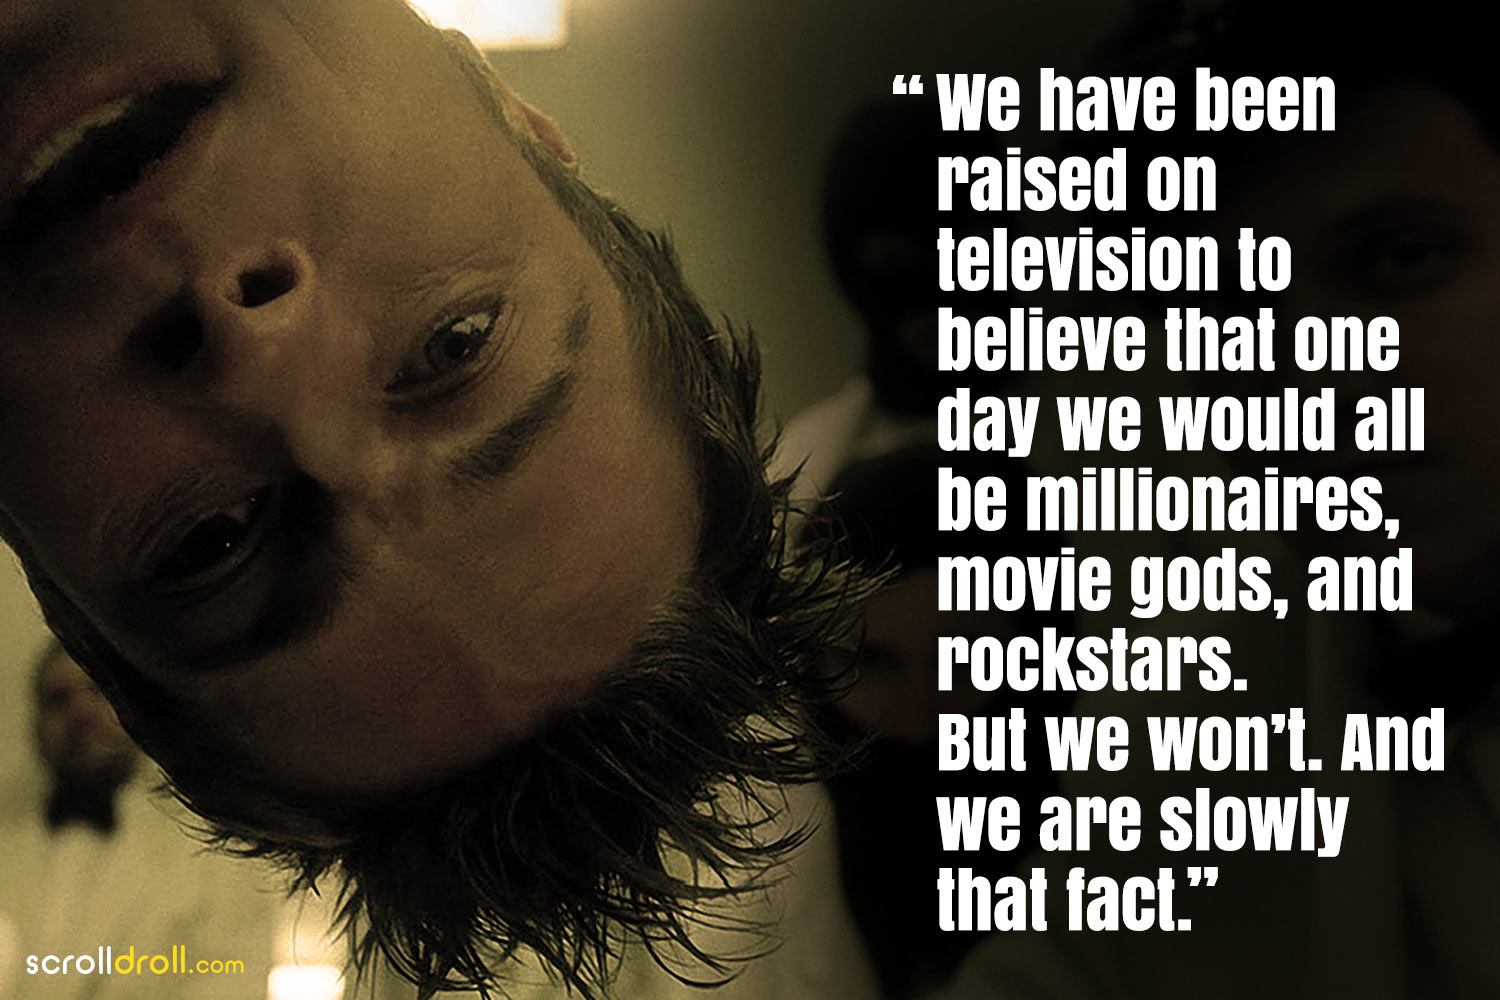 Fight Club Quotes- We have been raised on telivision to believe that one day we would all be millionaries movie gods and rockstars. But we won't and we are slowly that fact.